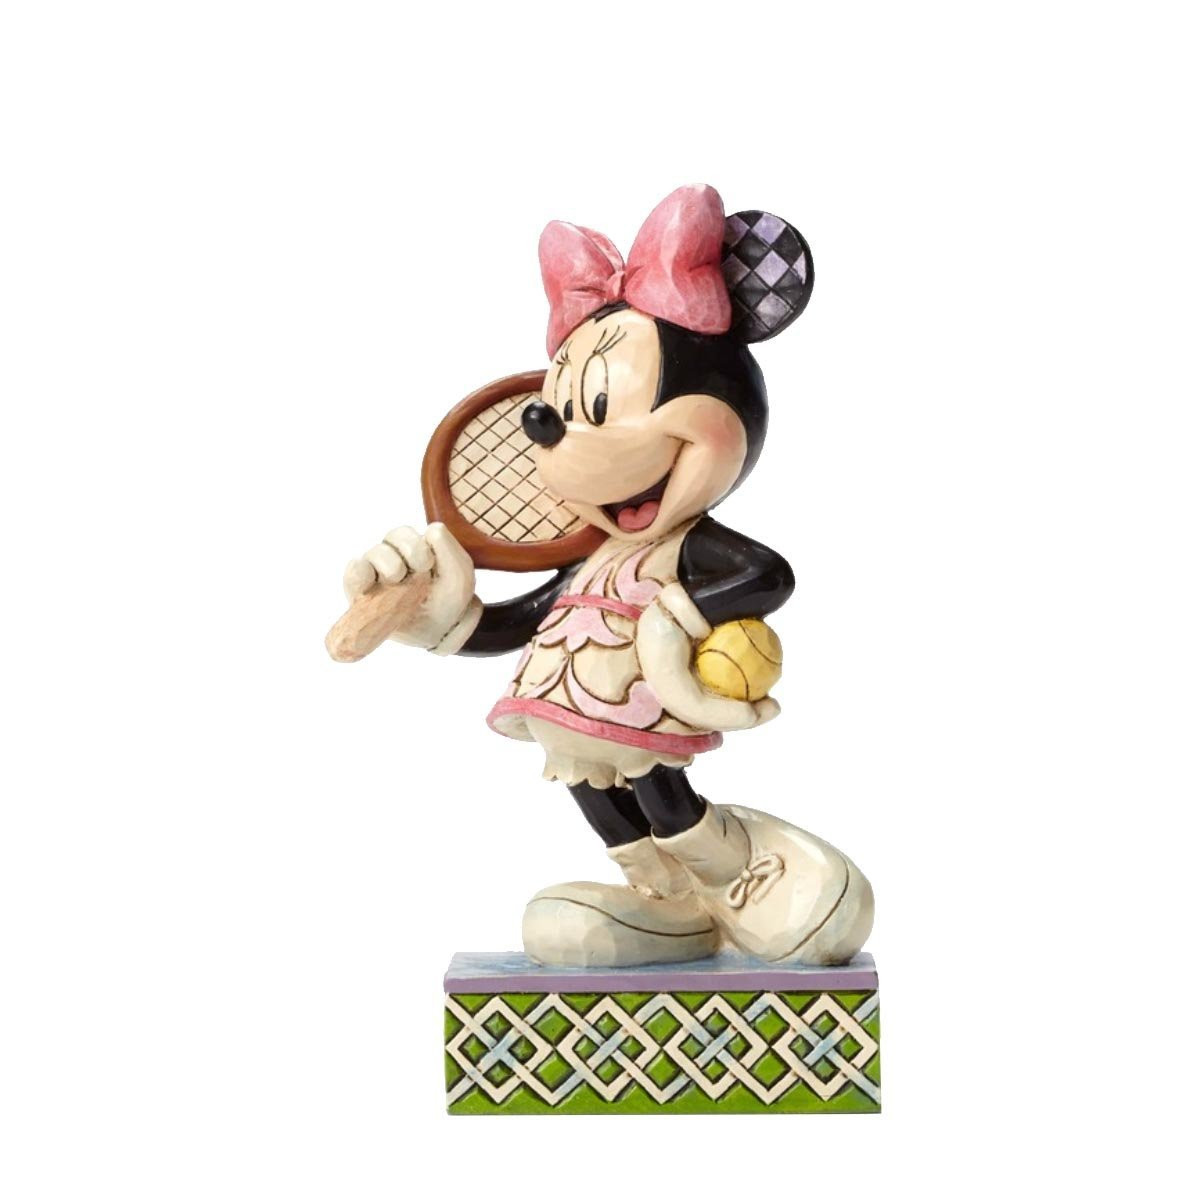 Figura Tennis, Anyone? (Minnie Mouse)